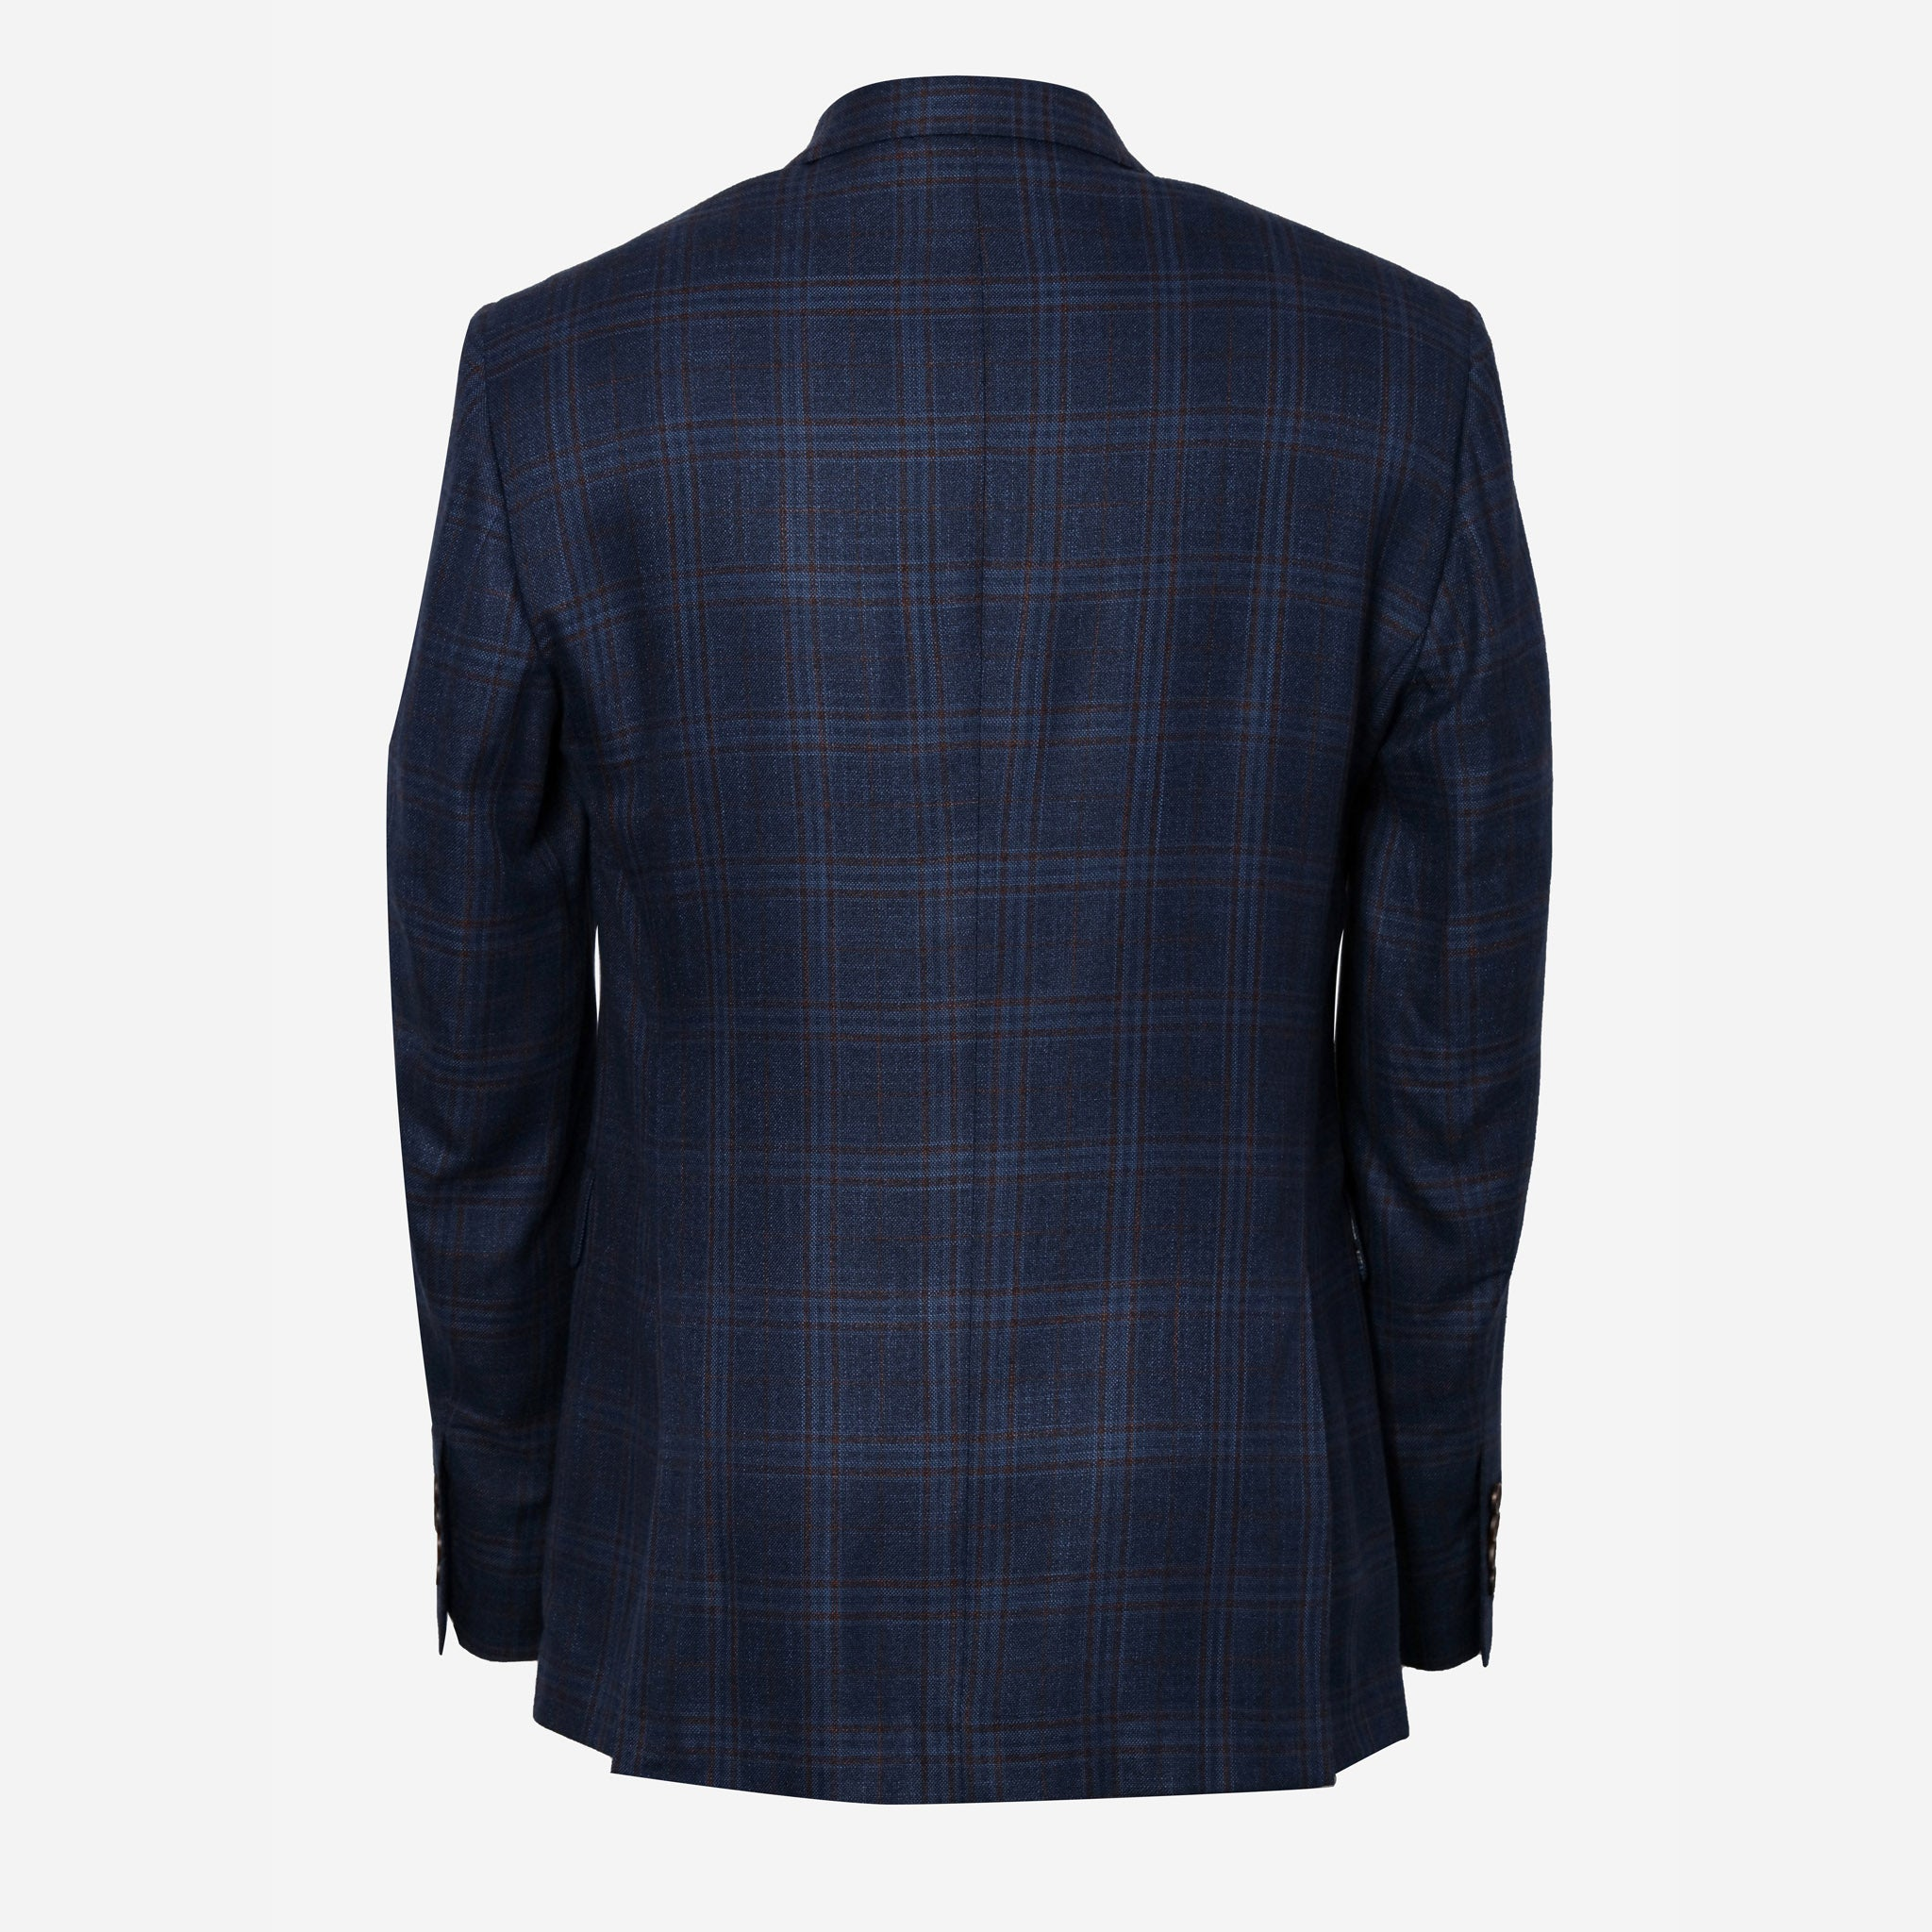 Bamboo in Navy Plaid